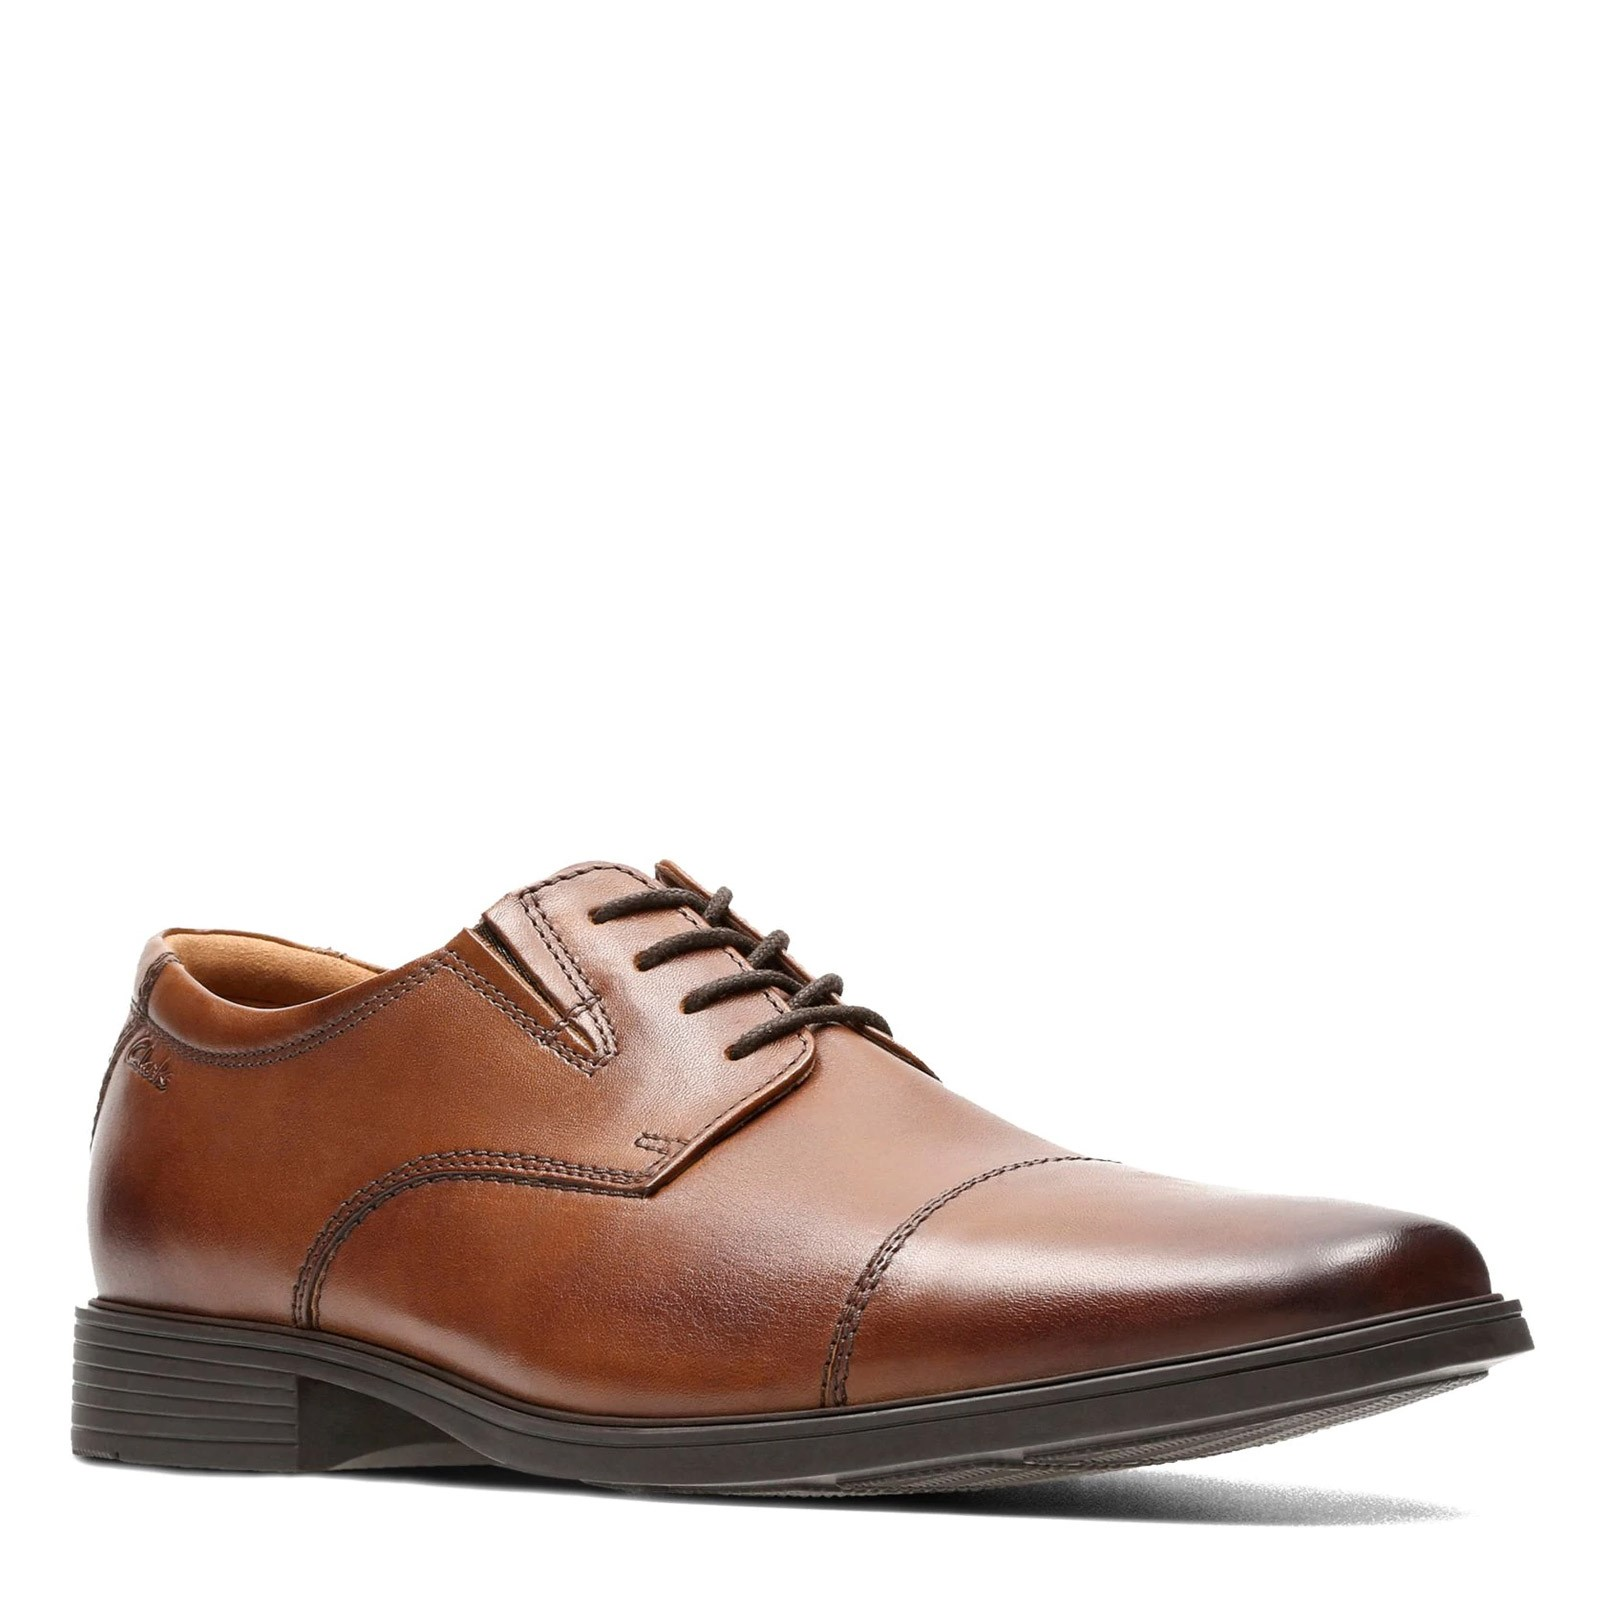 Men's Clarks, Tilden Cap Oxford